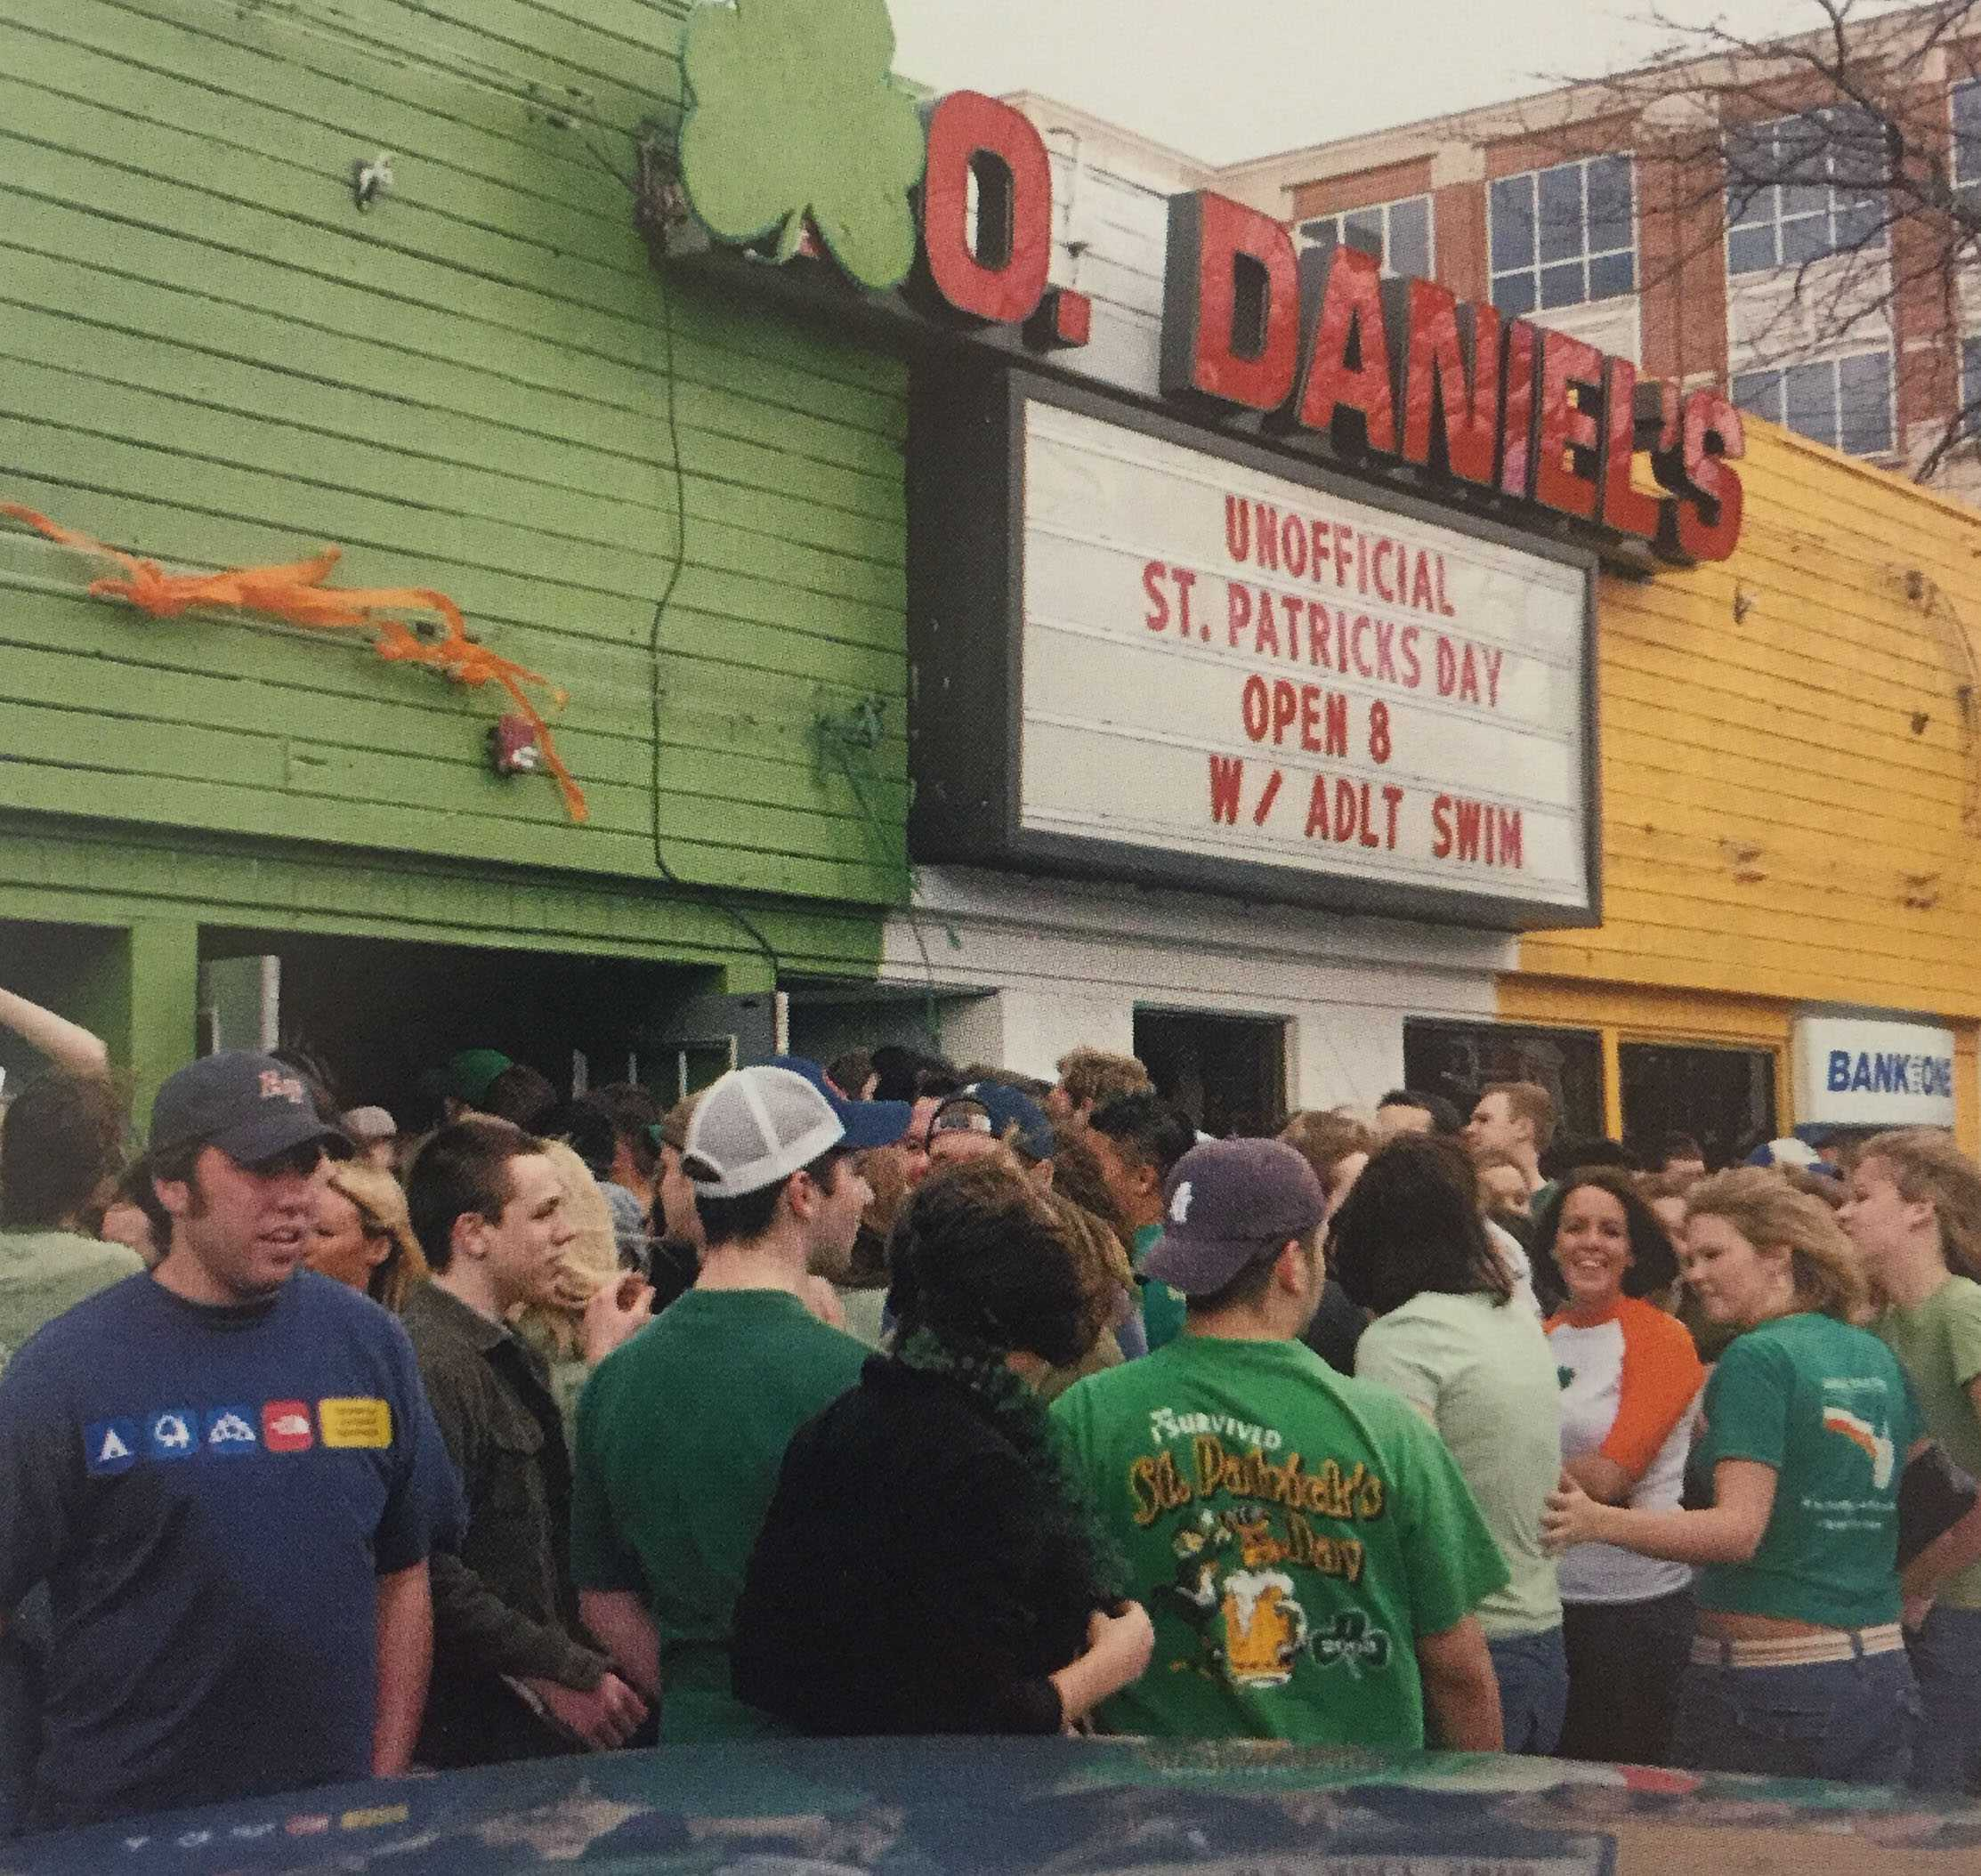 Students wait outside Co. Daniels, a popular bar at the time, on Unofficial, March 5th, 2004.